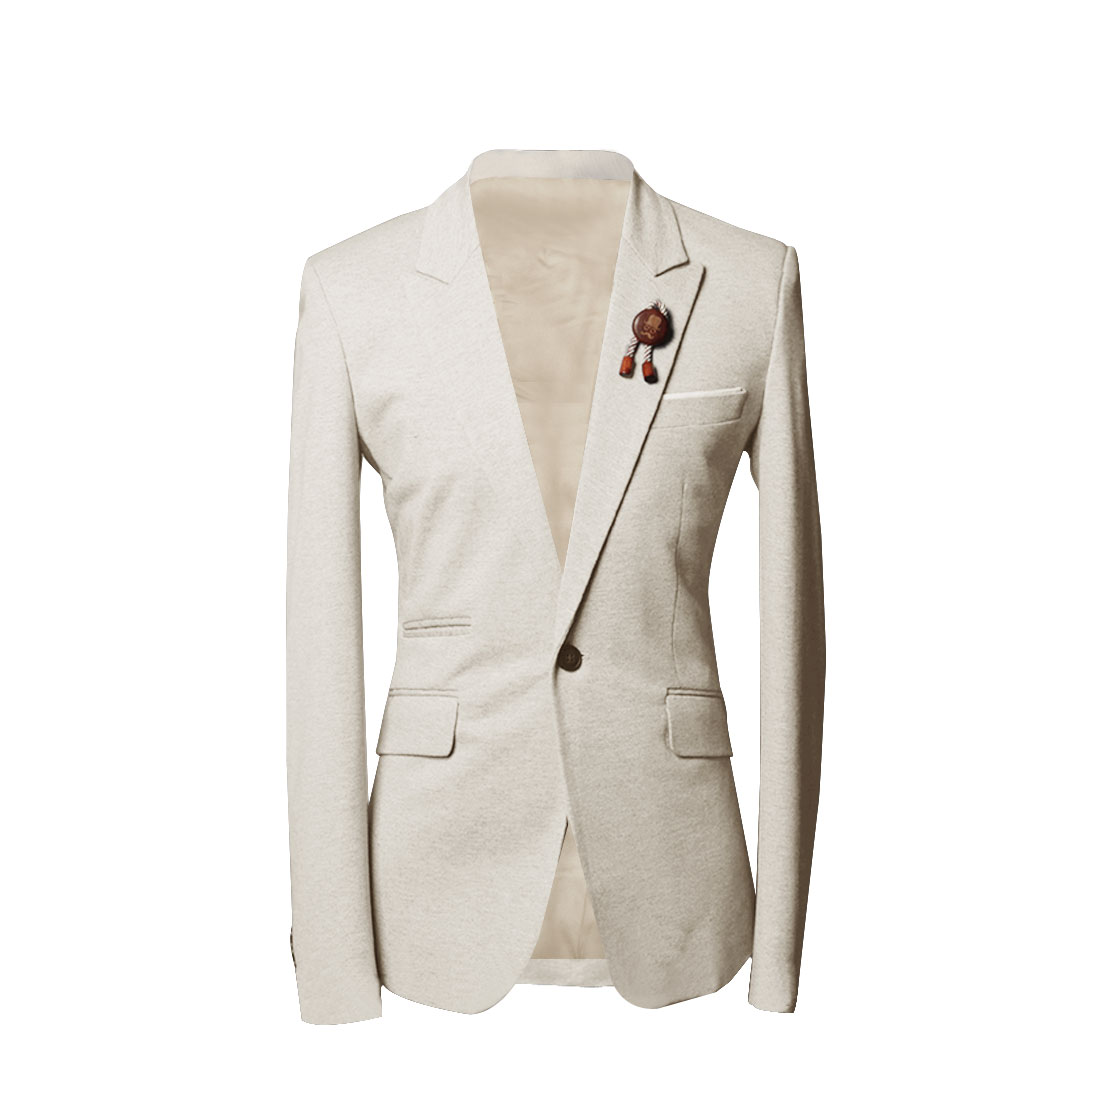 Men Beige M Notched Lapel Style Skinny Fit Chest Pocket Casual Blazer